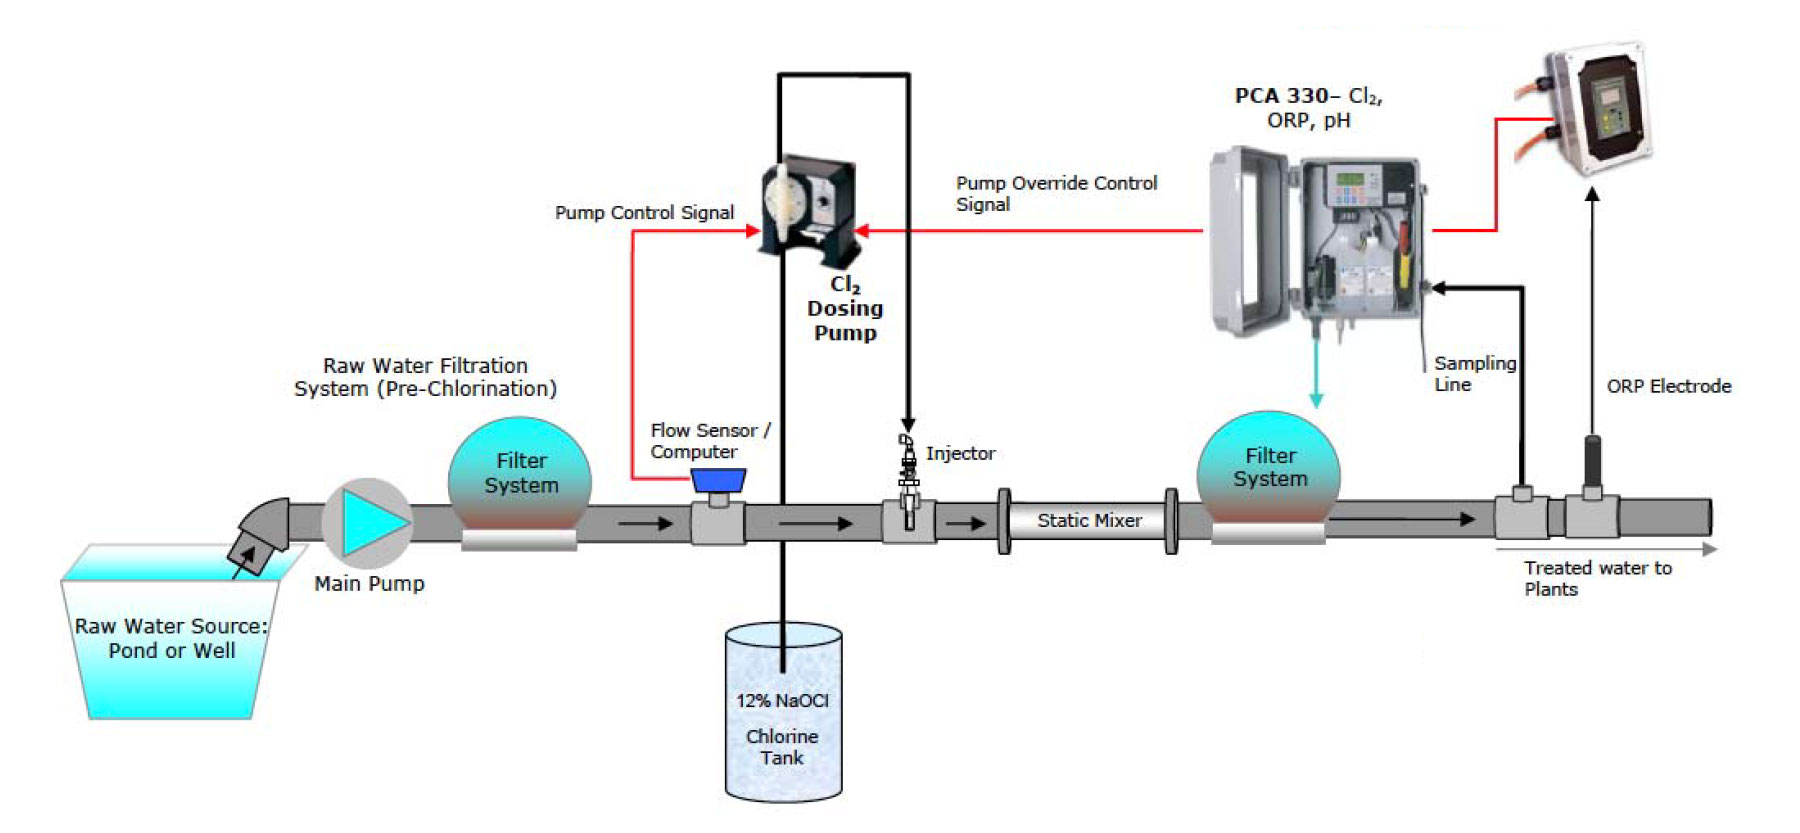 Hanna In-line Sanitation System diagram